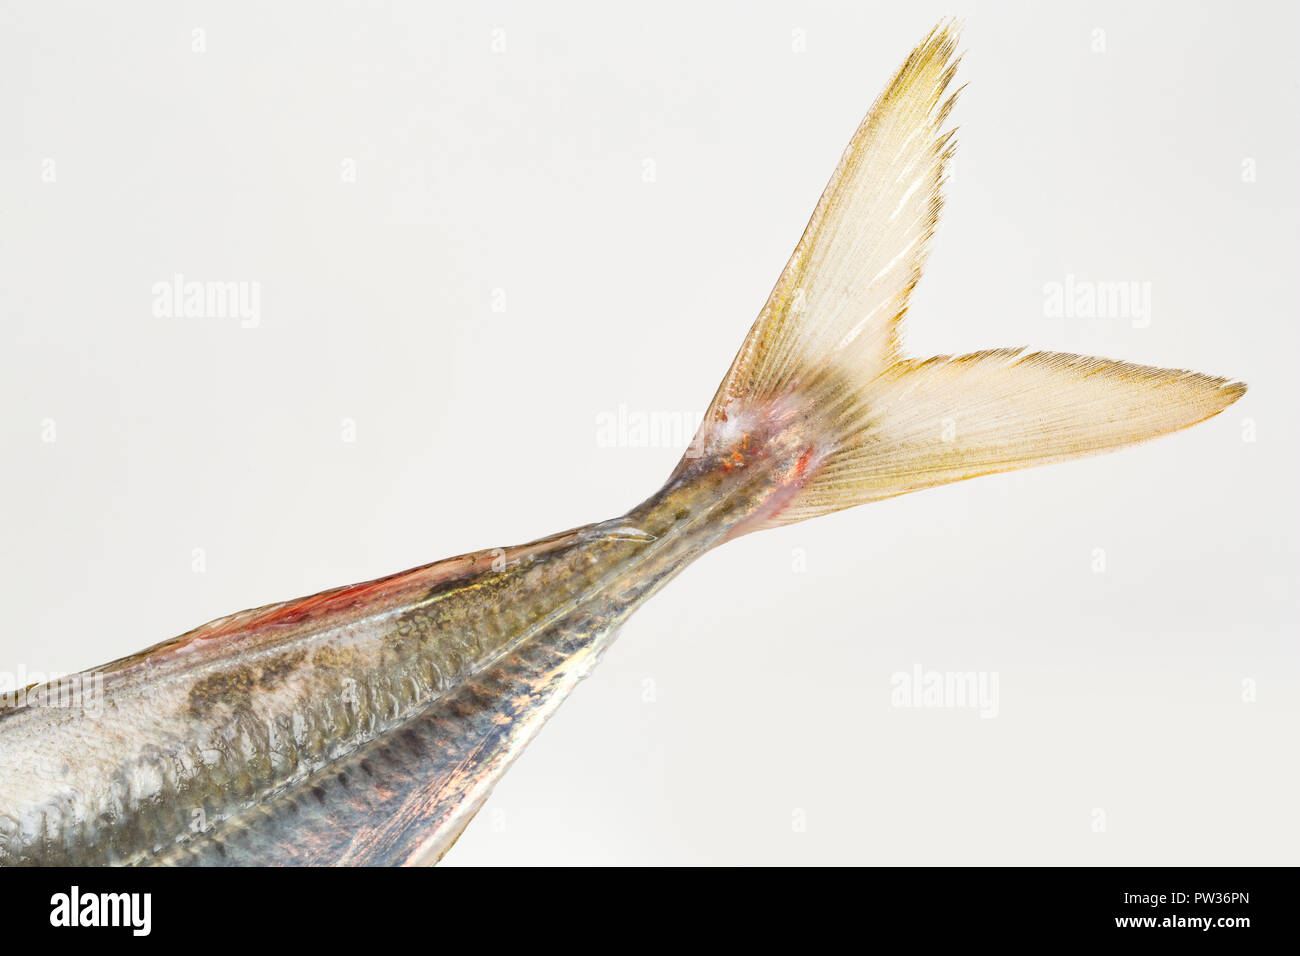 Detail of the tail, or caudal fin, of a scad, also known as horse mackerel, Trachurus trachurus, caught on rod and line boat fishing in the English Ch - Stock Image